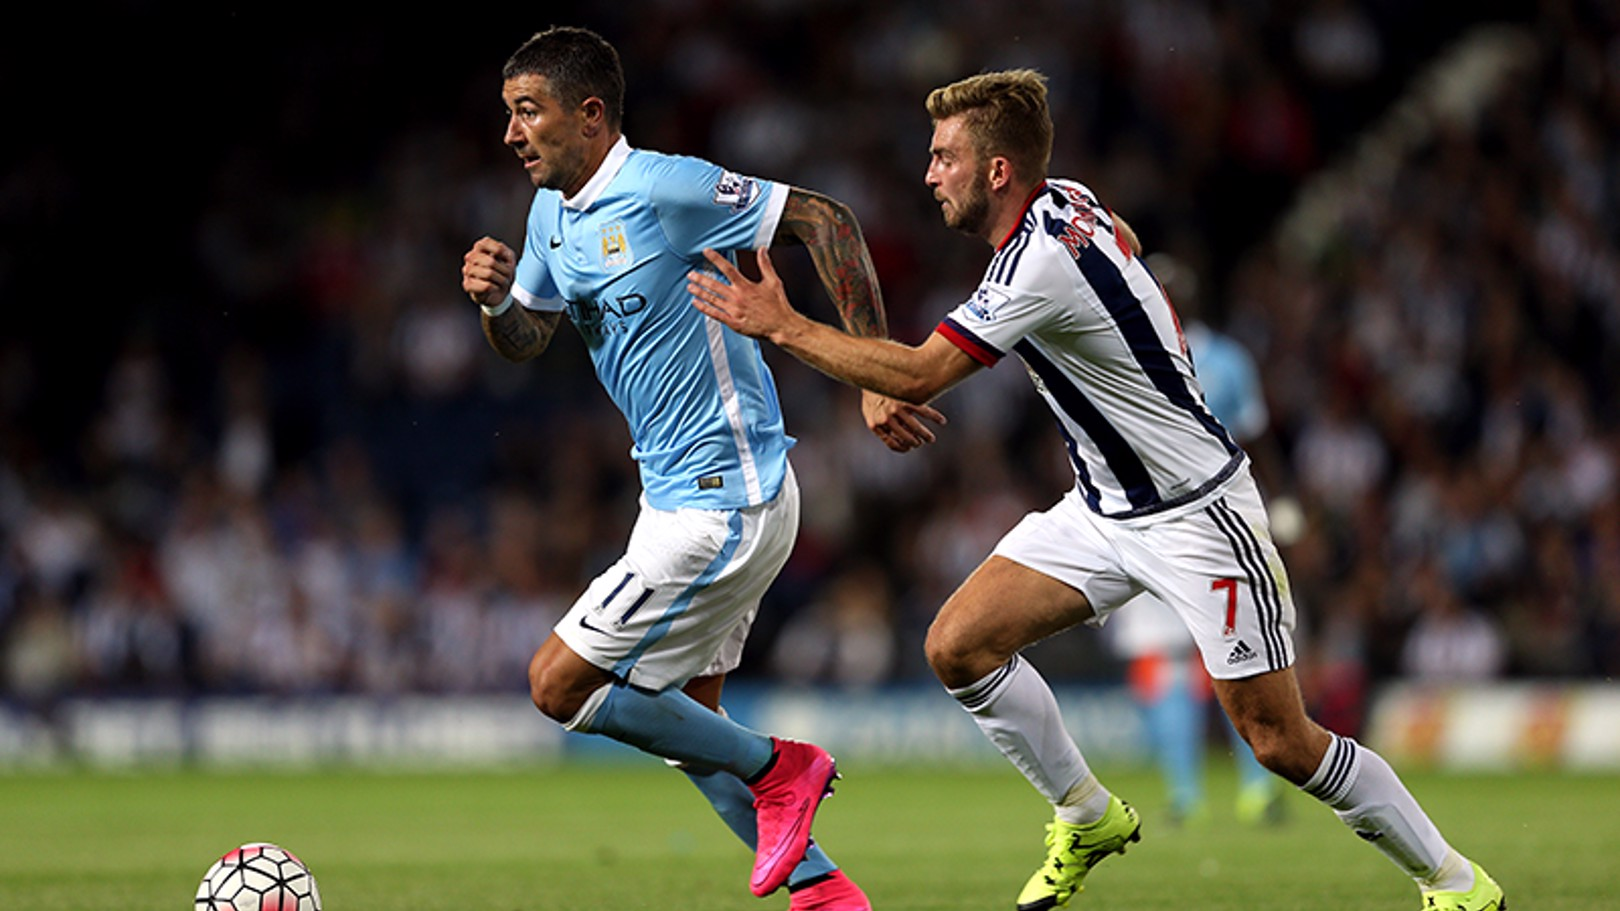 SMALL SCREEN: Find out how you can watch West Brom v City.